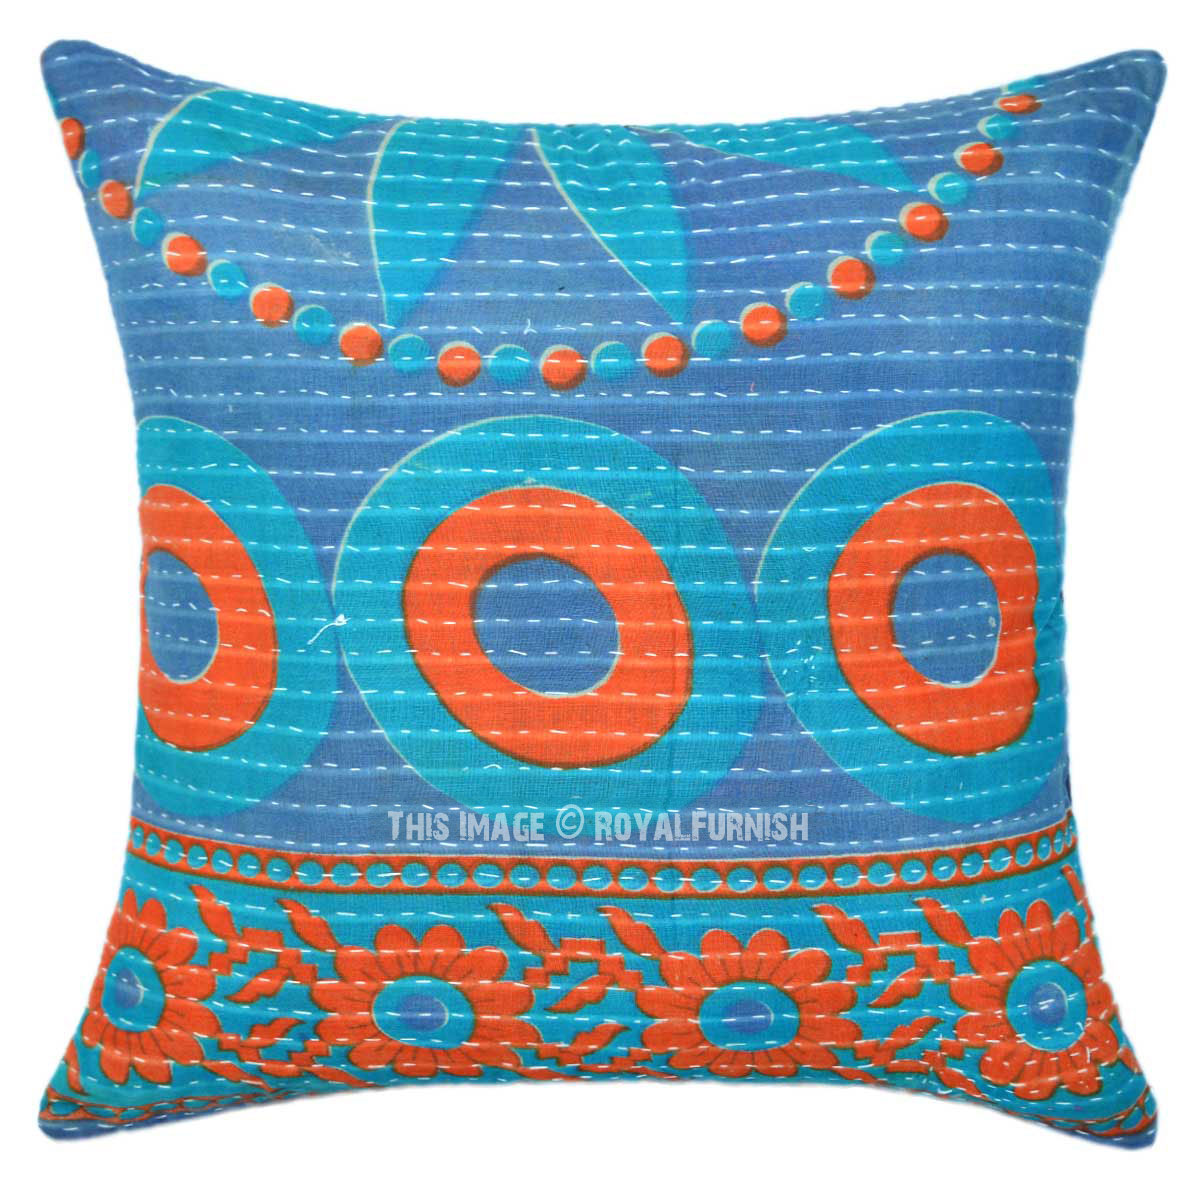 Colorful Bohemian Throw Pillows : Grey Colorful Medallion 16X16 Bohemian Accent Kantha Pillow Cover 16X16 - RoyalFurnish.com